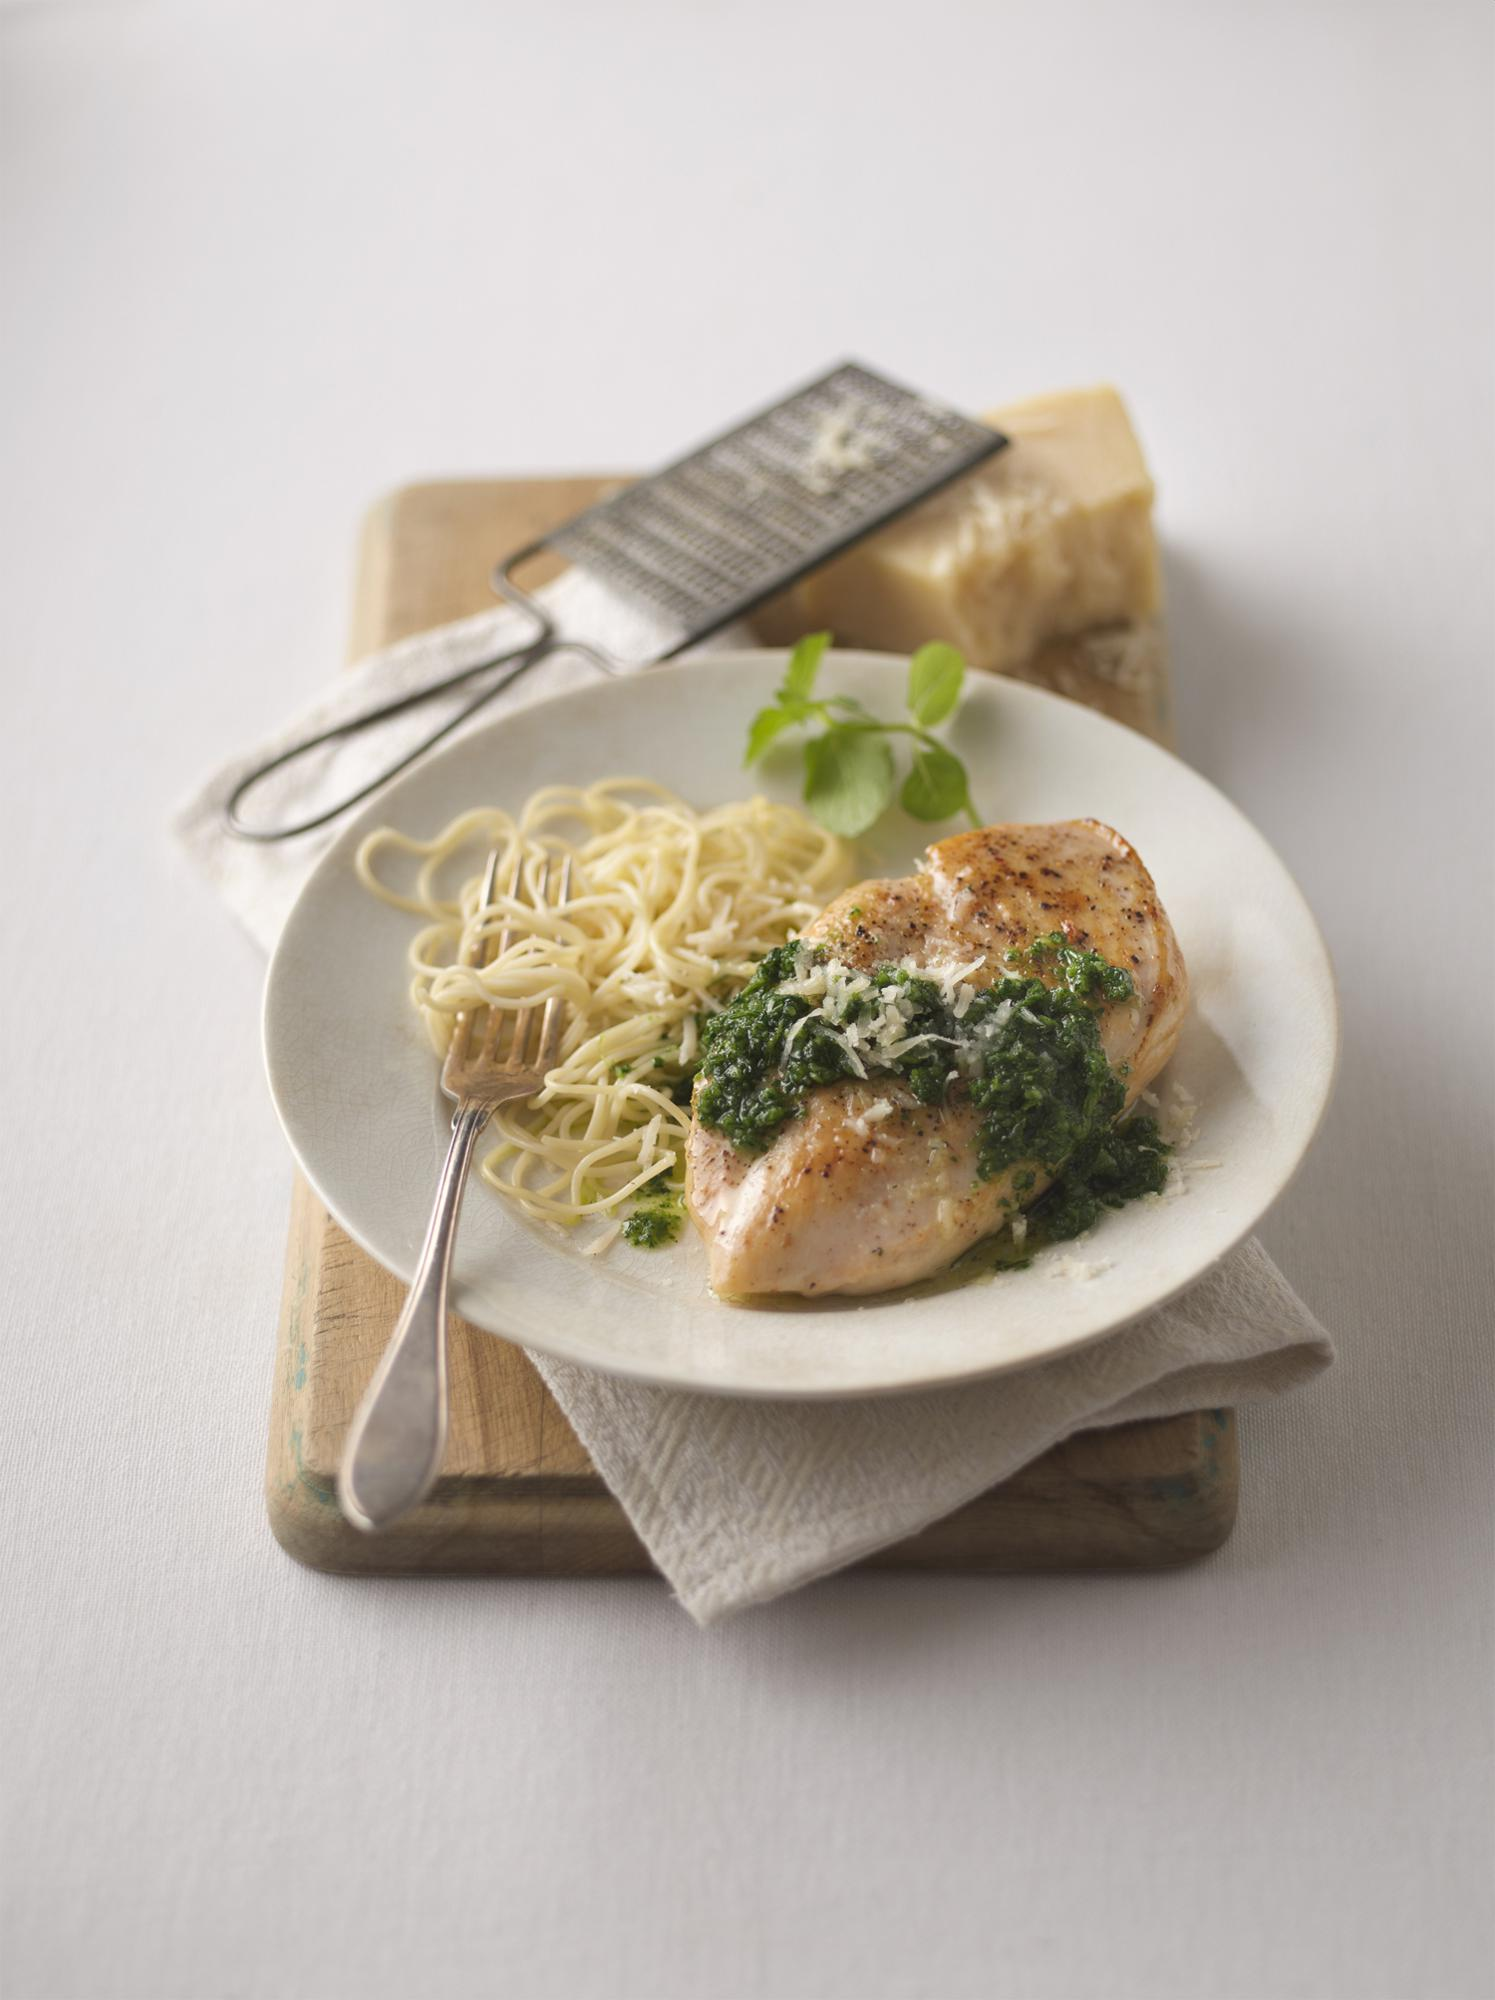 Garlic-Mint Pesto Chicken